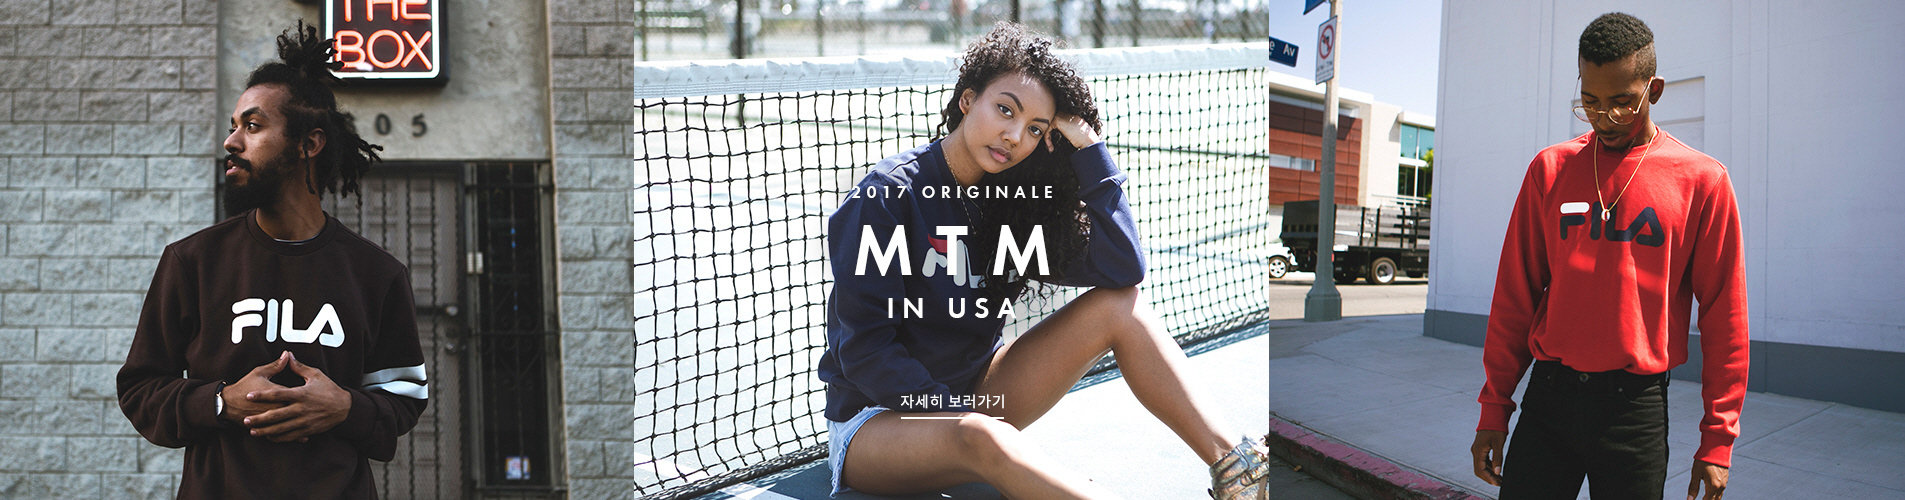 2016 ORIGINALE MTM IN USA